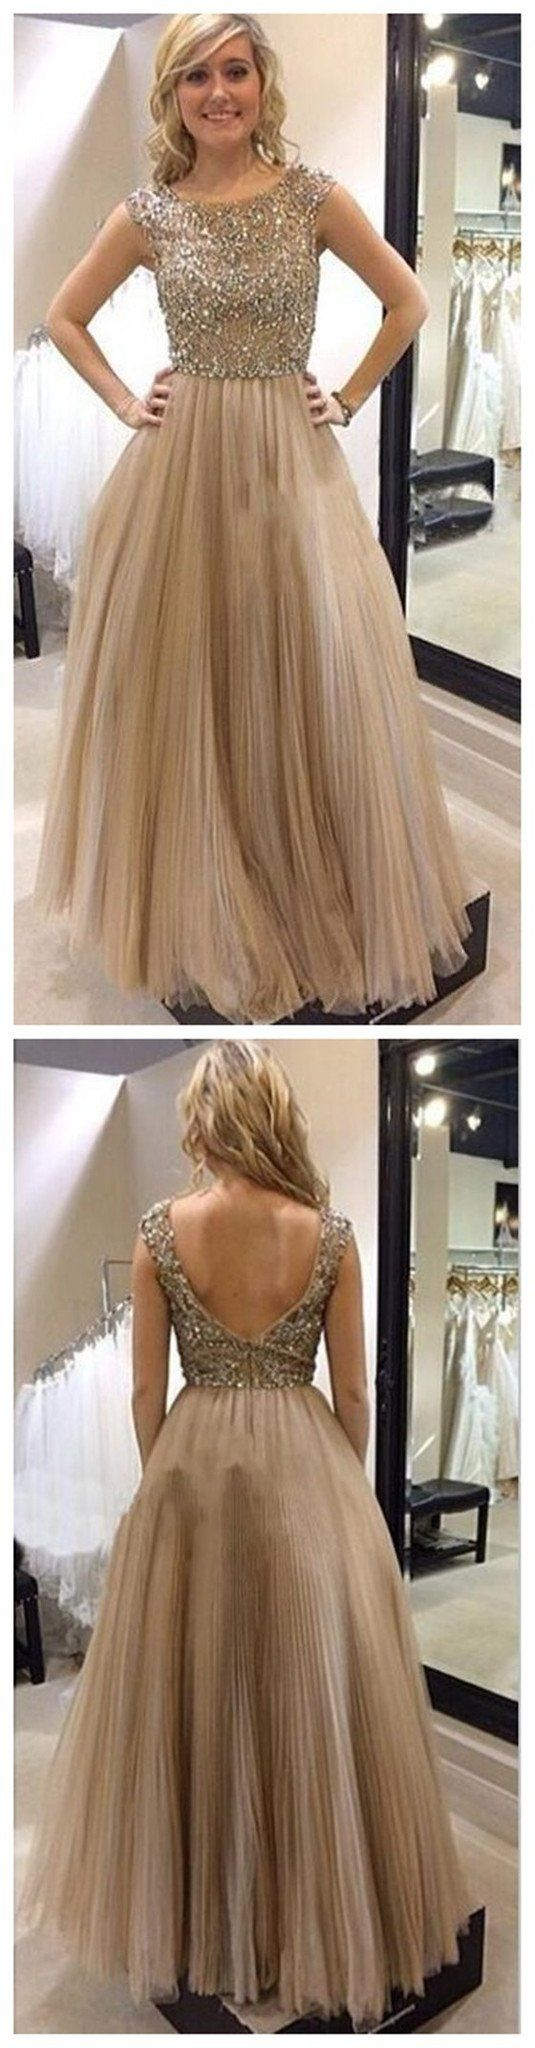 Tulle Open Back Fashion Charming Newest Evening Long Prom Dresses Online,PD0135 #sposabridal.com #promdresses #prom #party